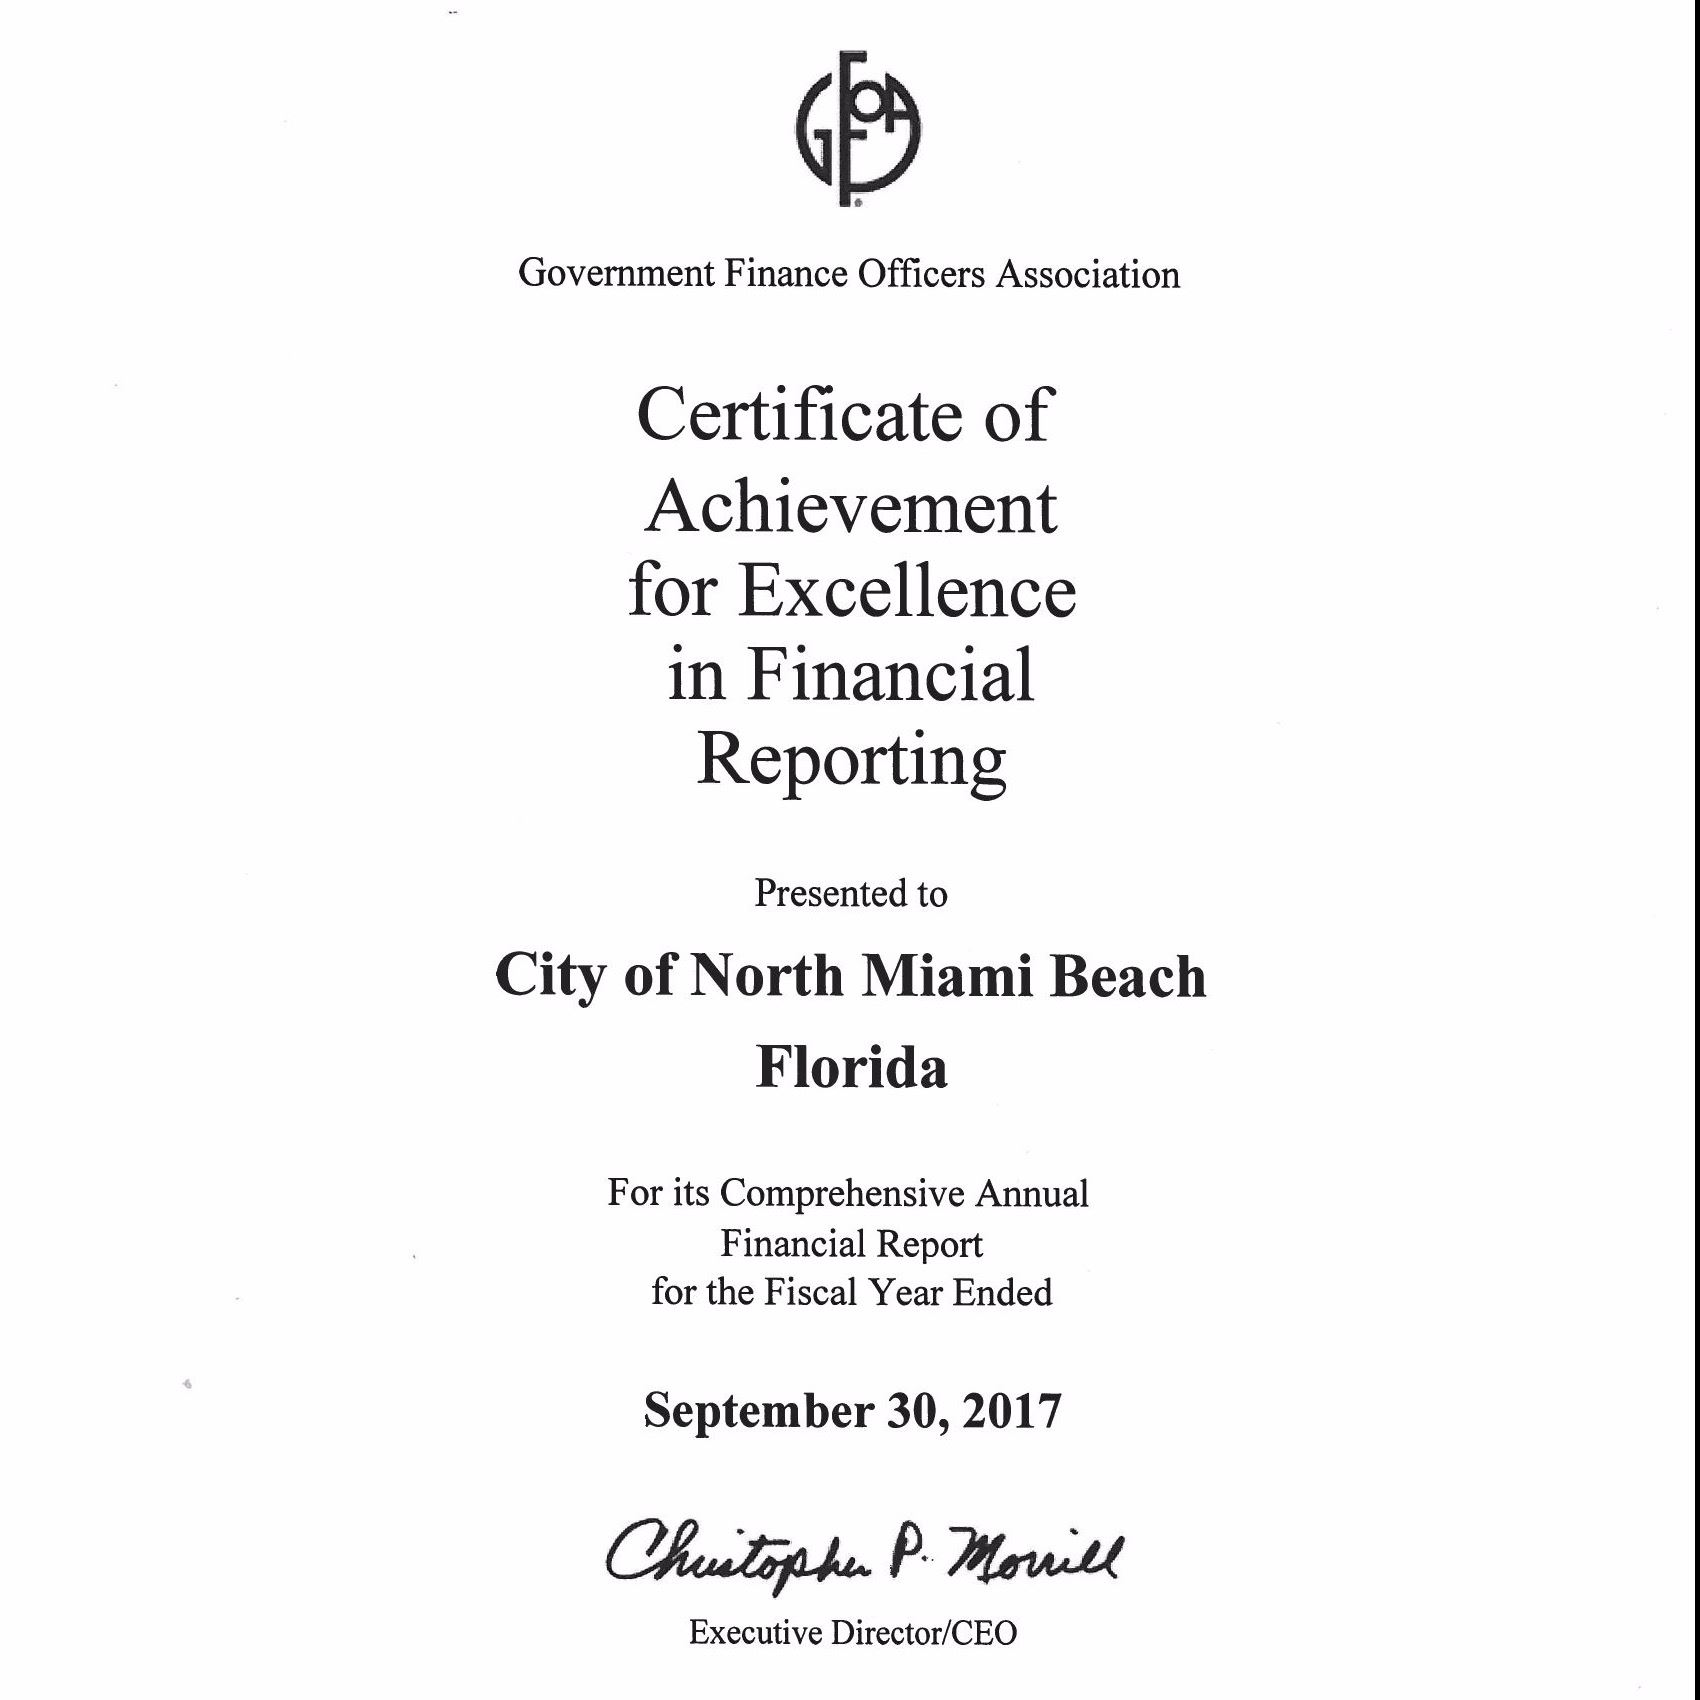 Certificate of Achievement for Excellence in Financial Reporting presented to City North Miami Beach